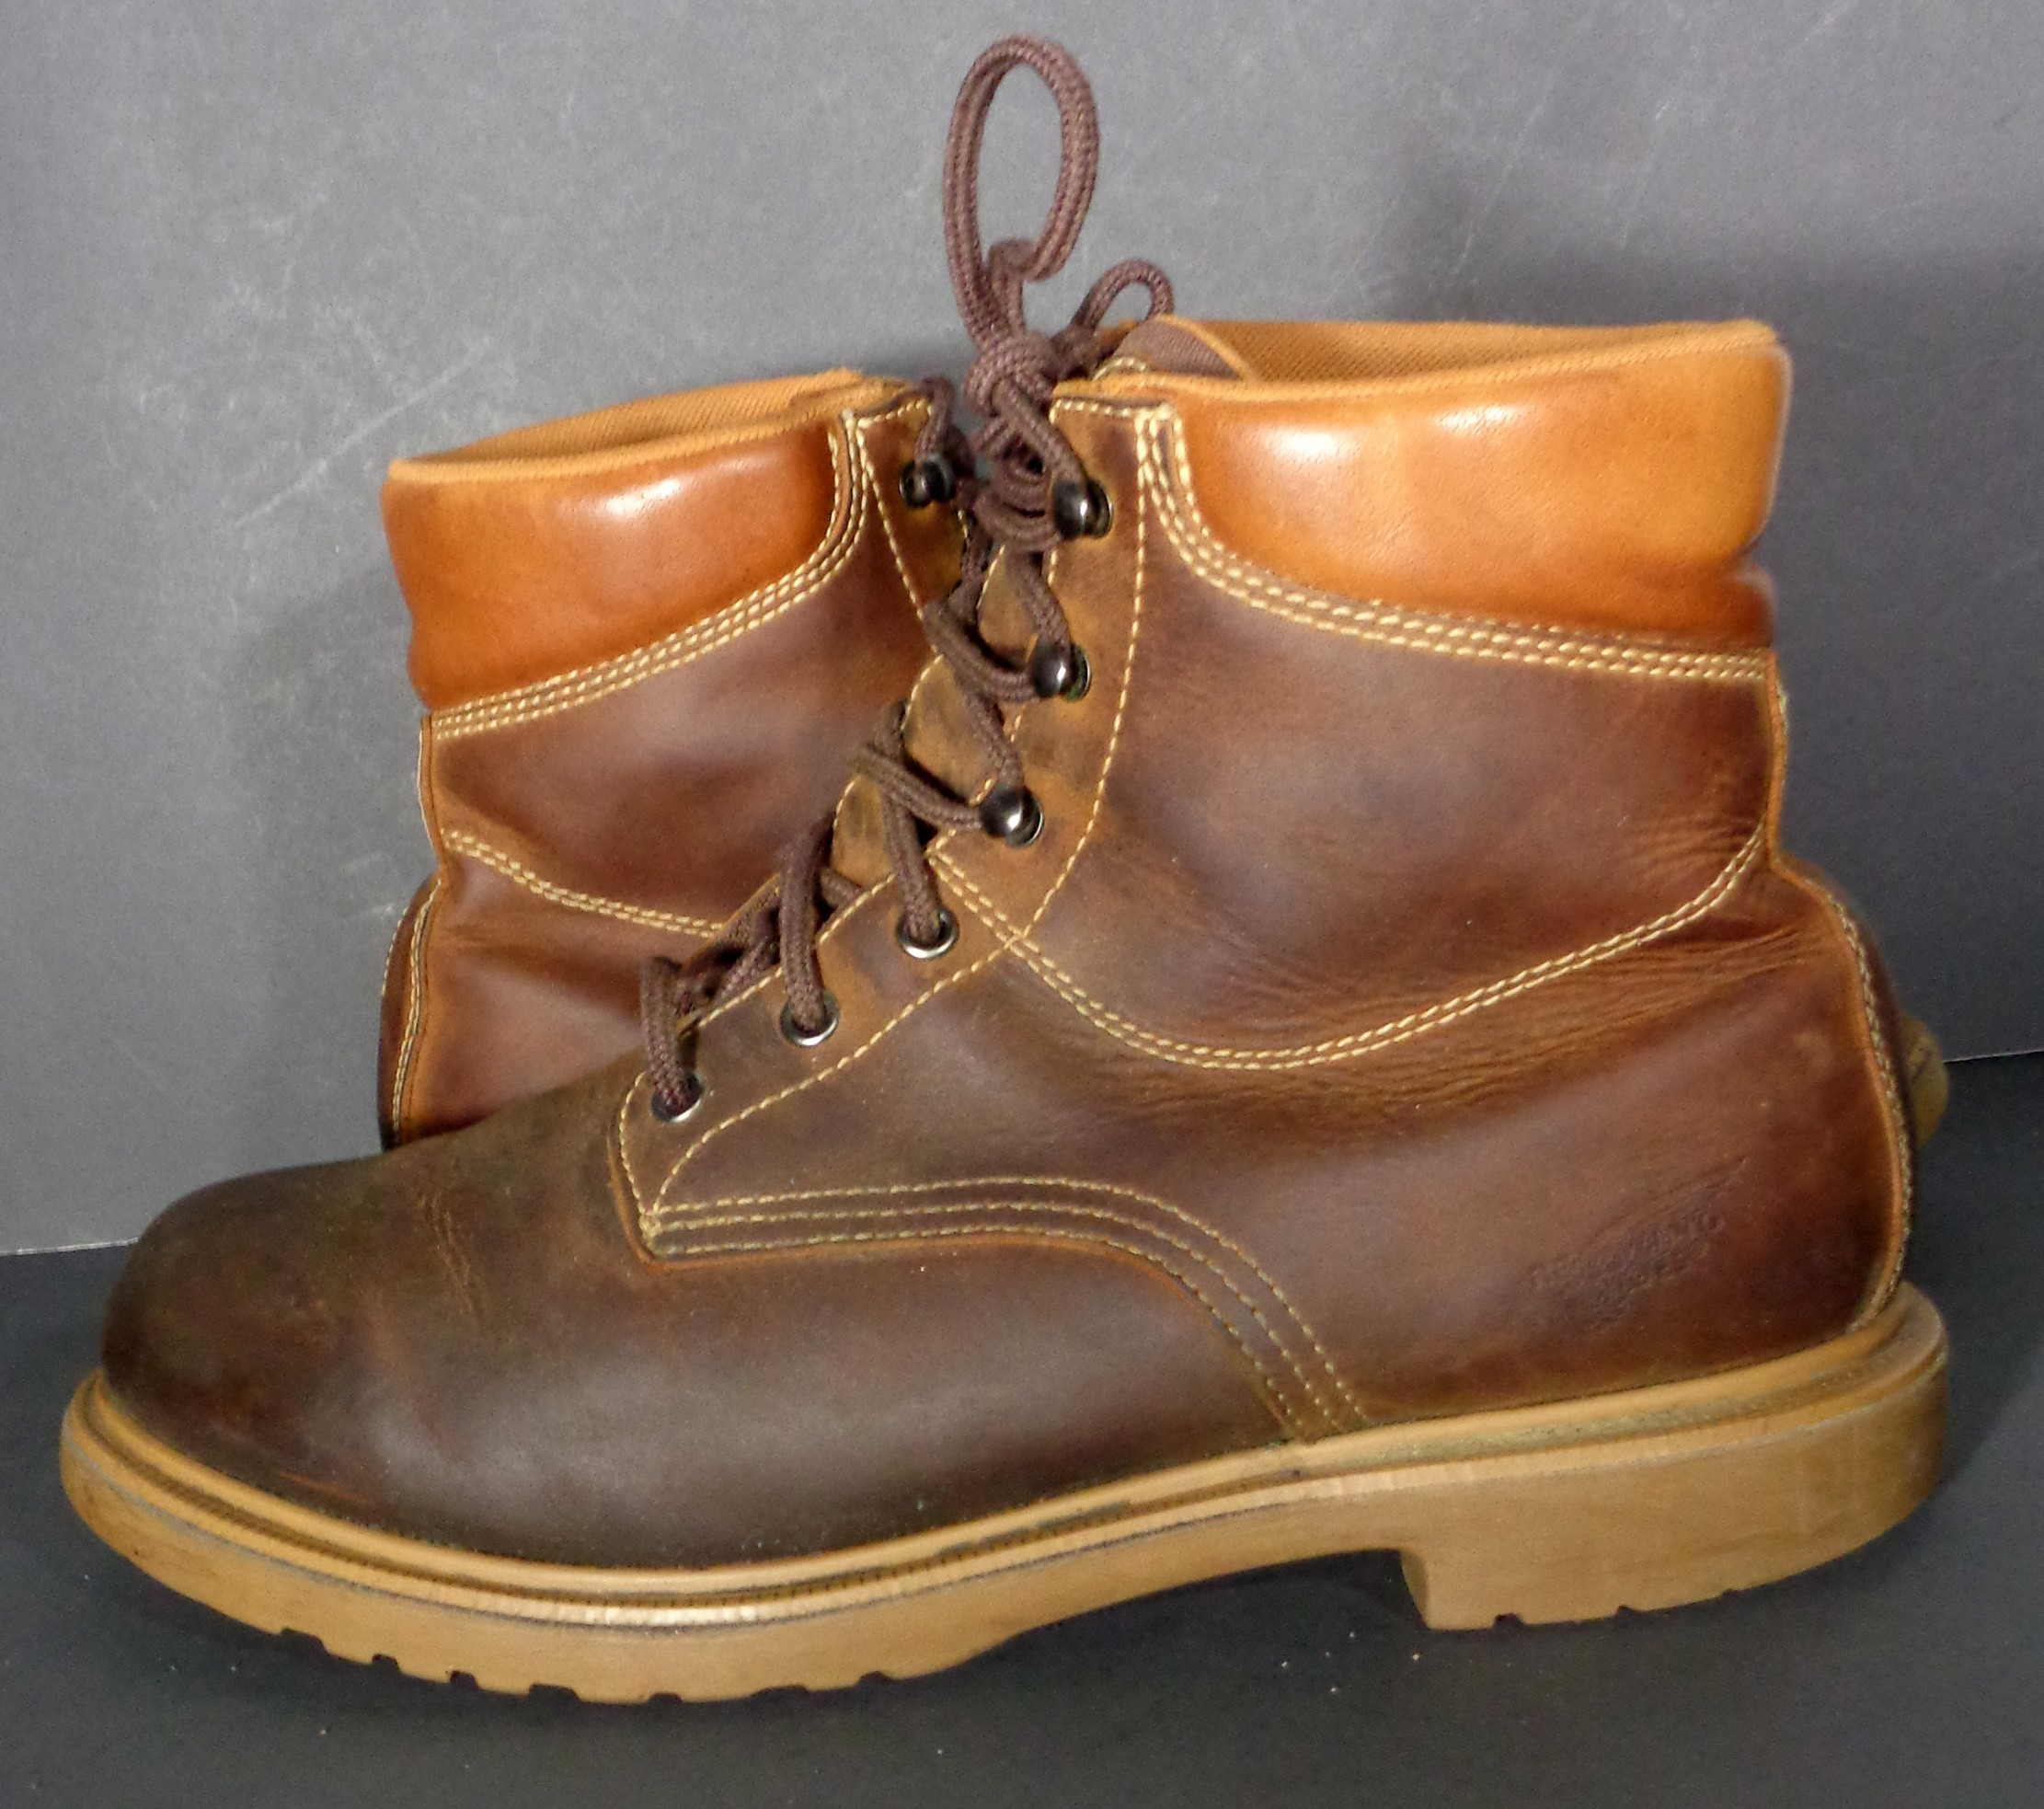 Red Wing Work Boots Discount HismJzbO